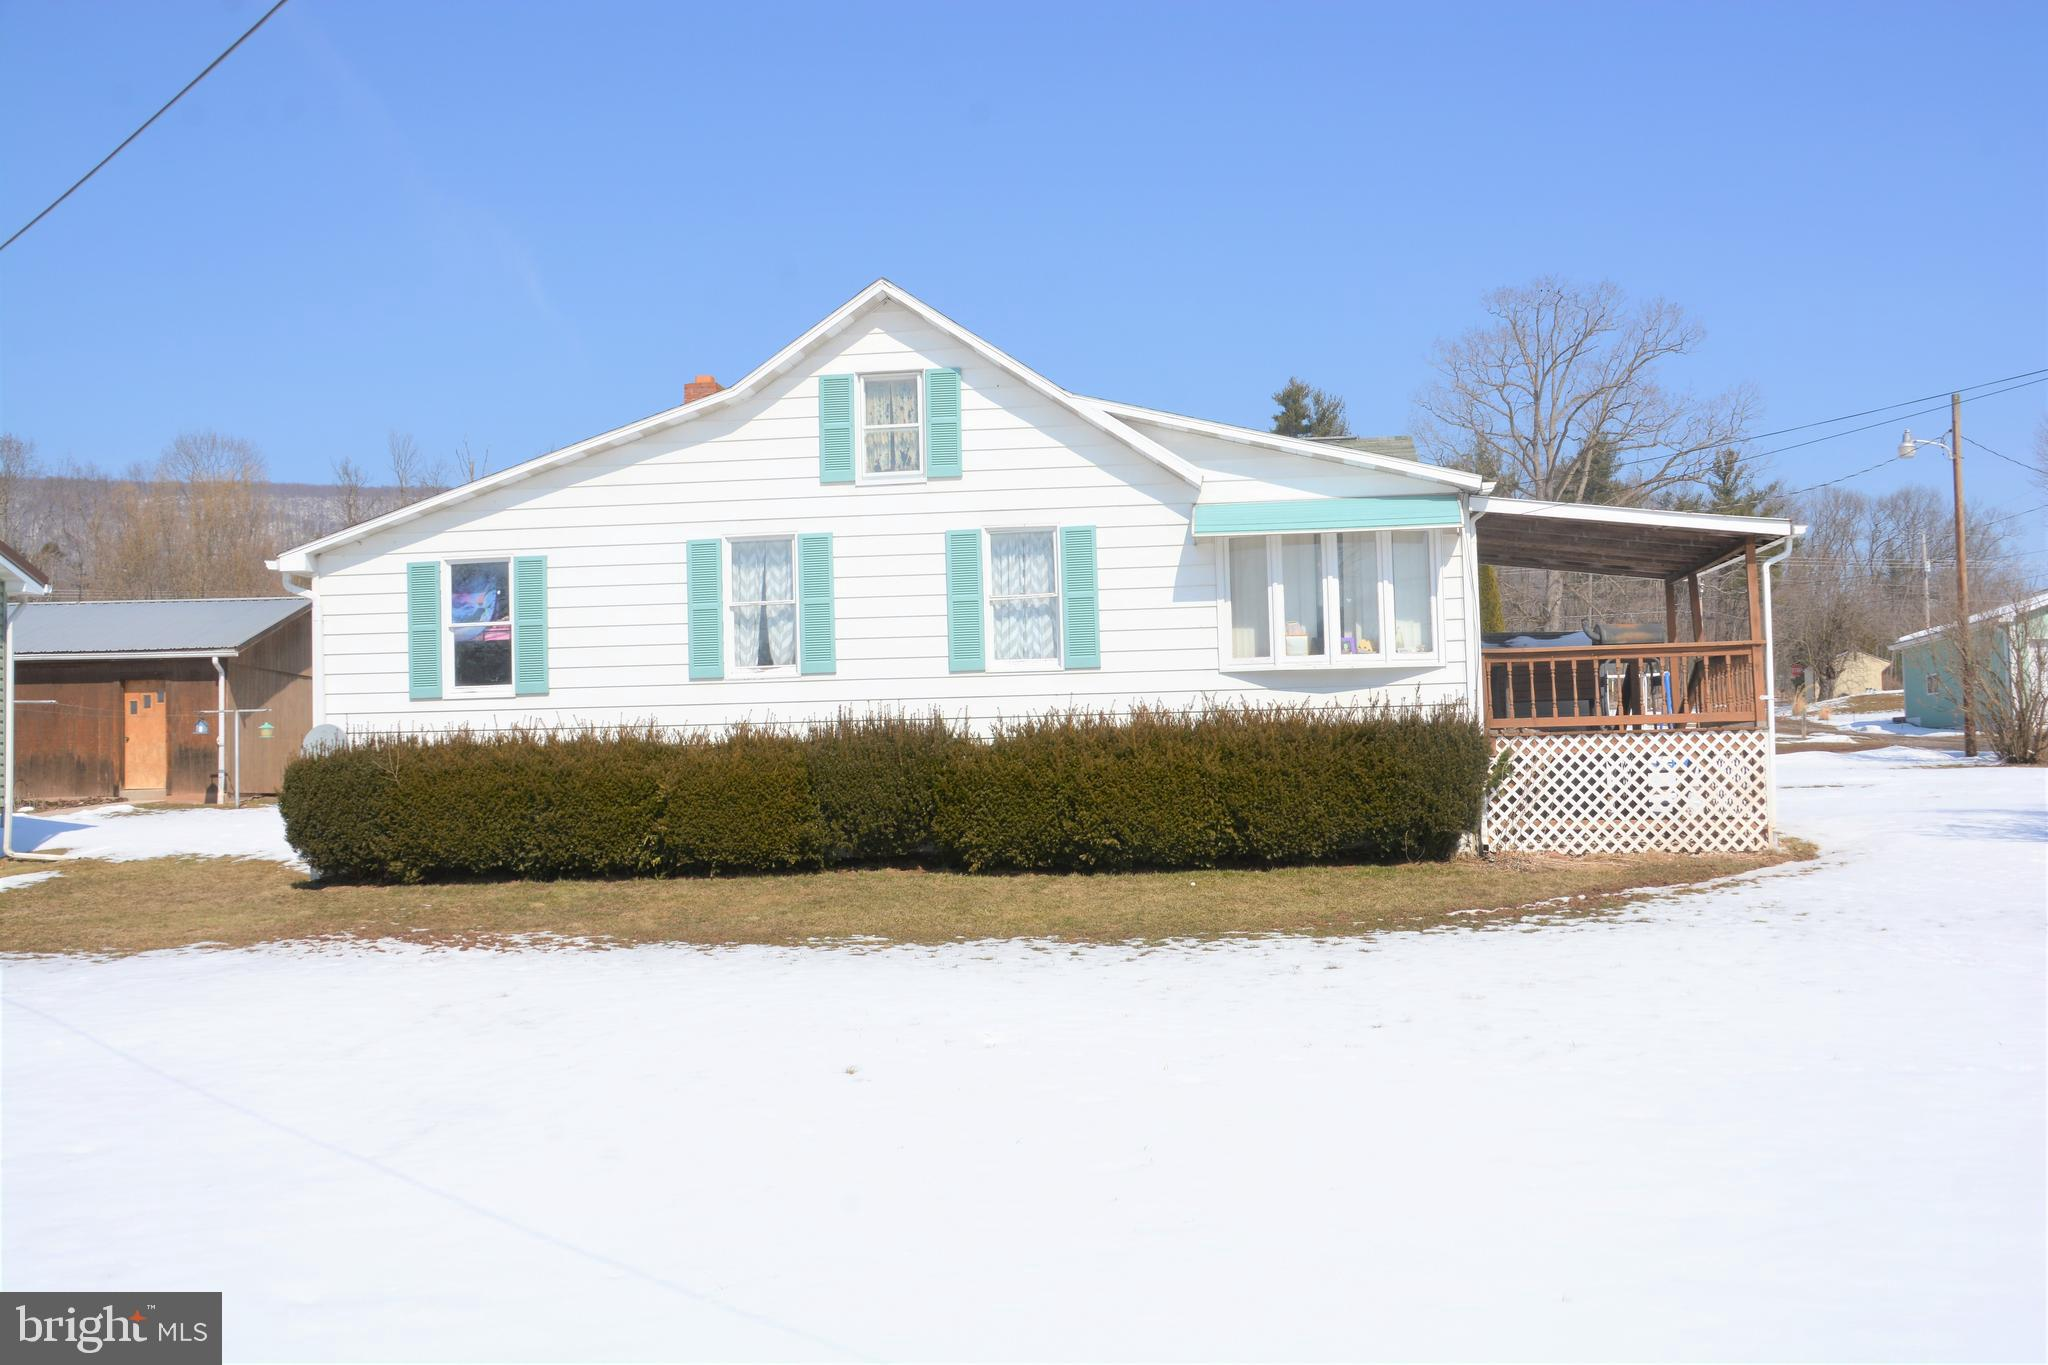 475 TANNERY ROAD W, WELLS TANNERY, PA 16691